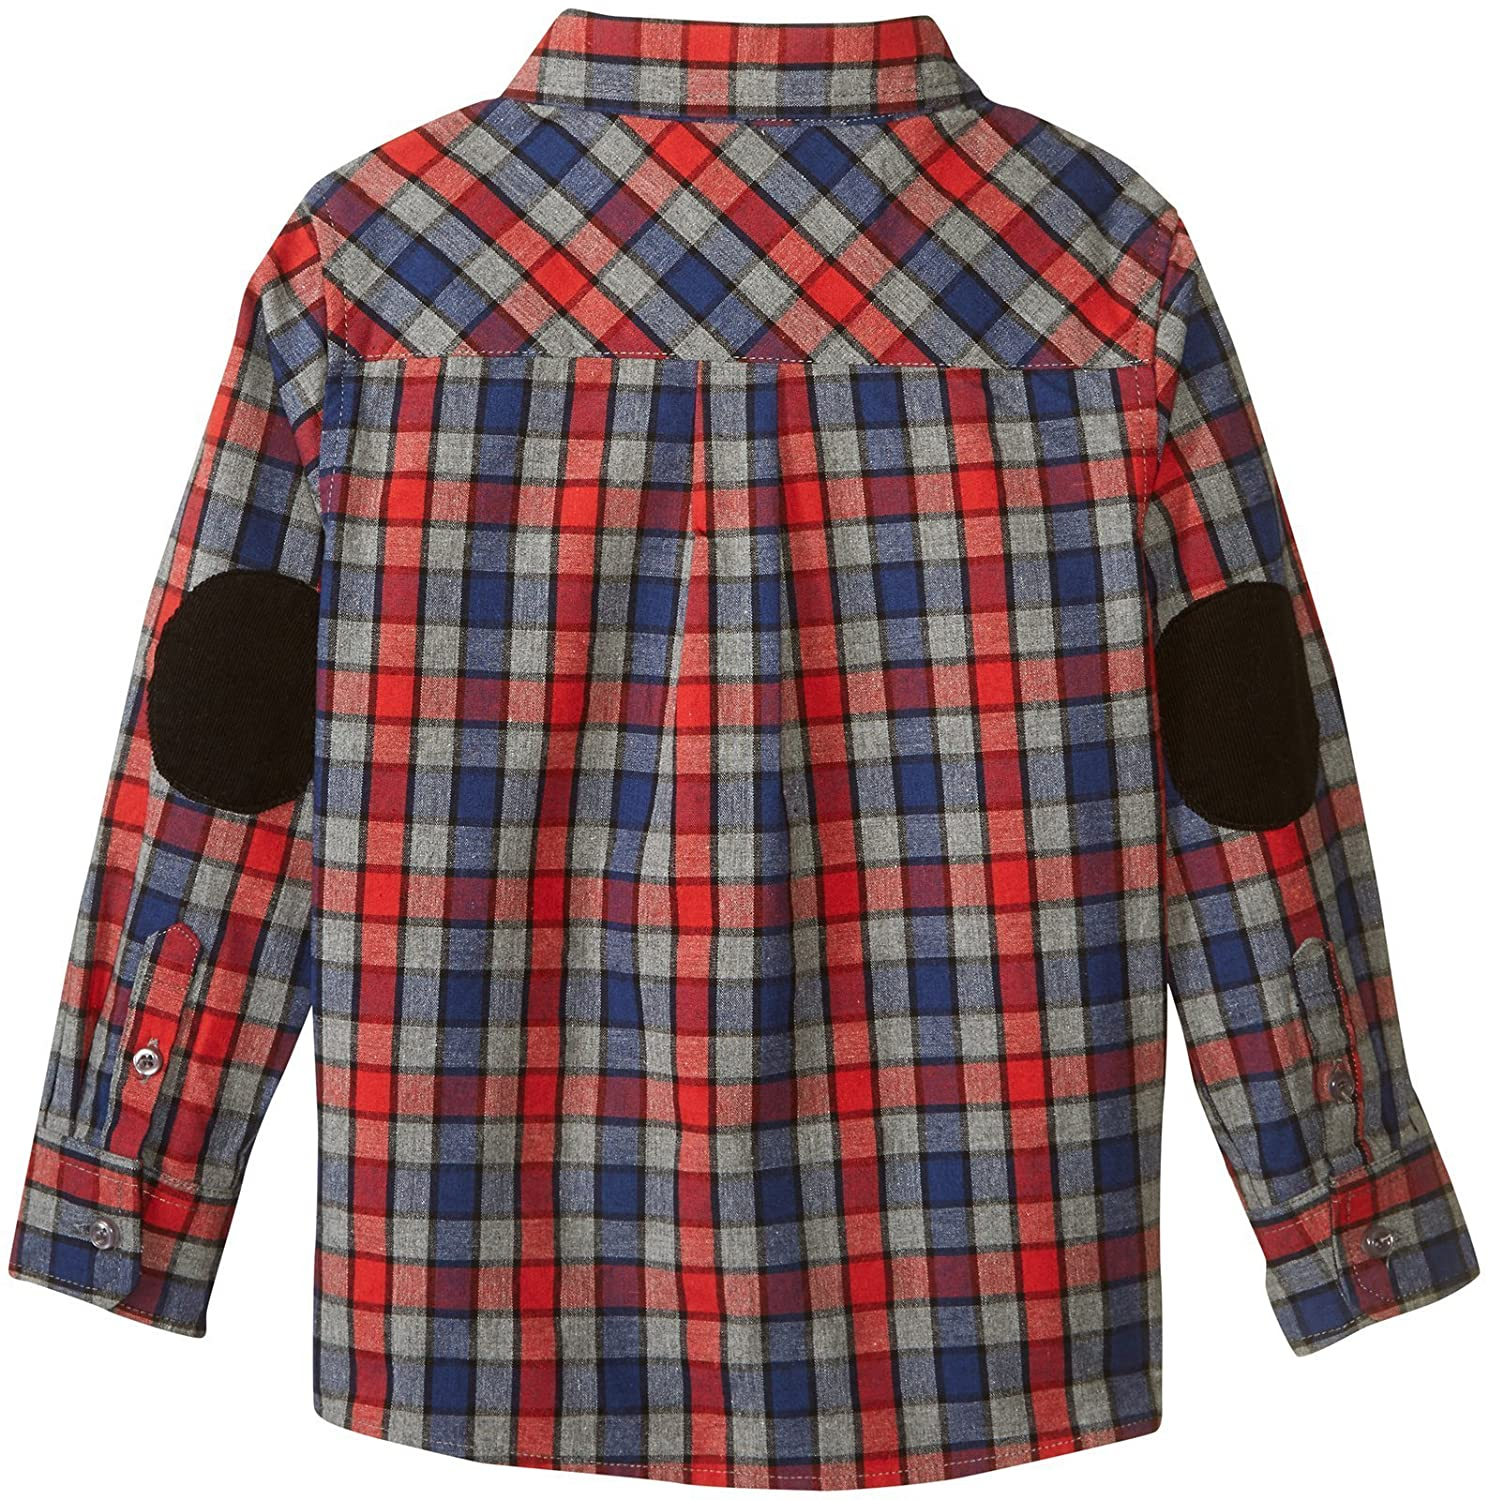 Andy /& Evan Boys Multi Check Flannel Shirt-Toddler